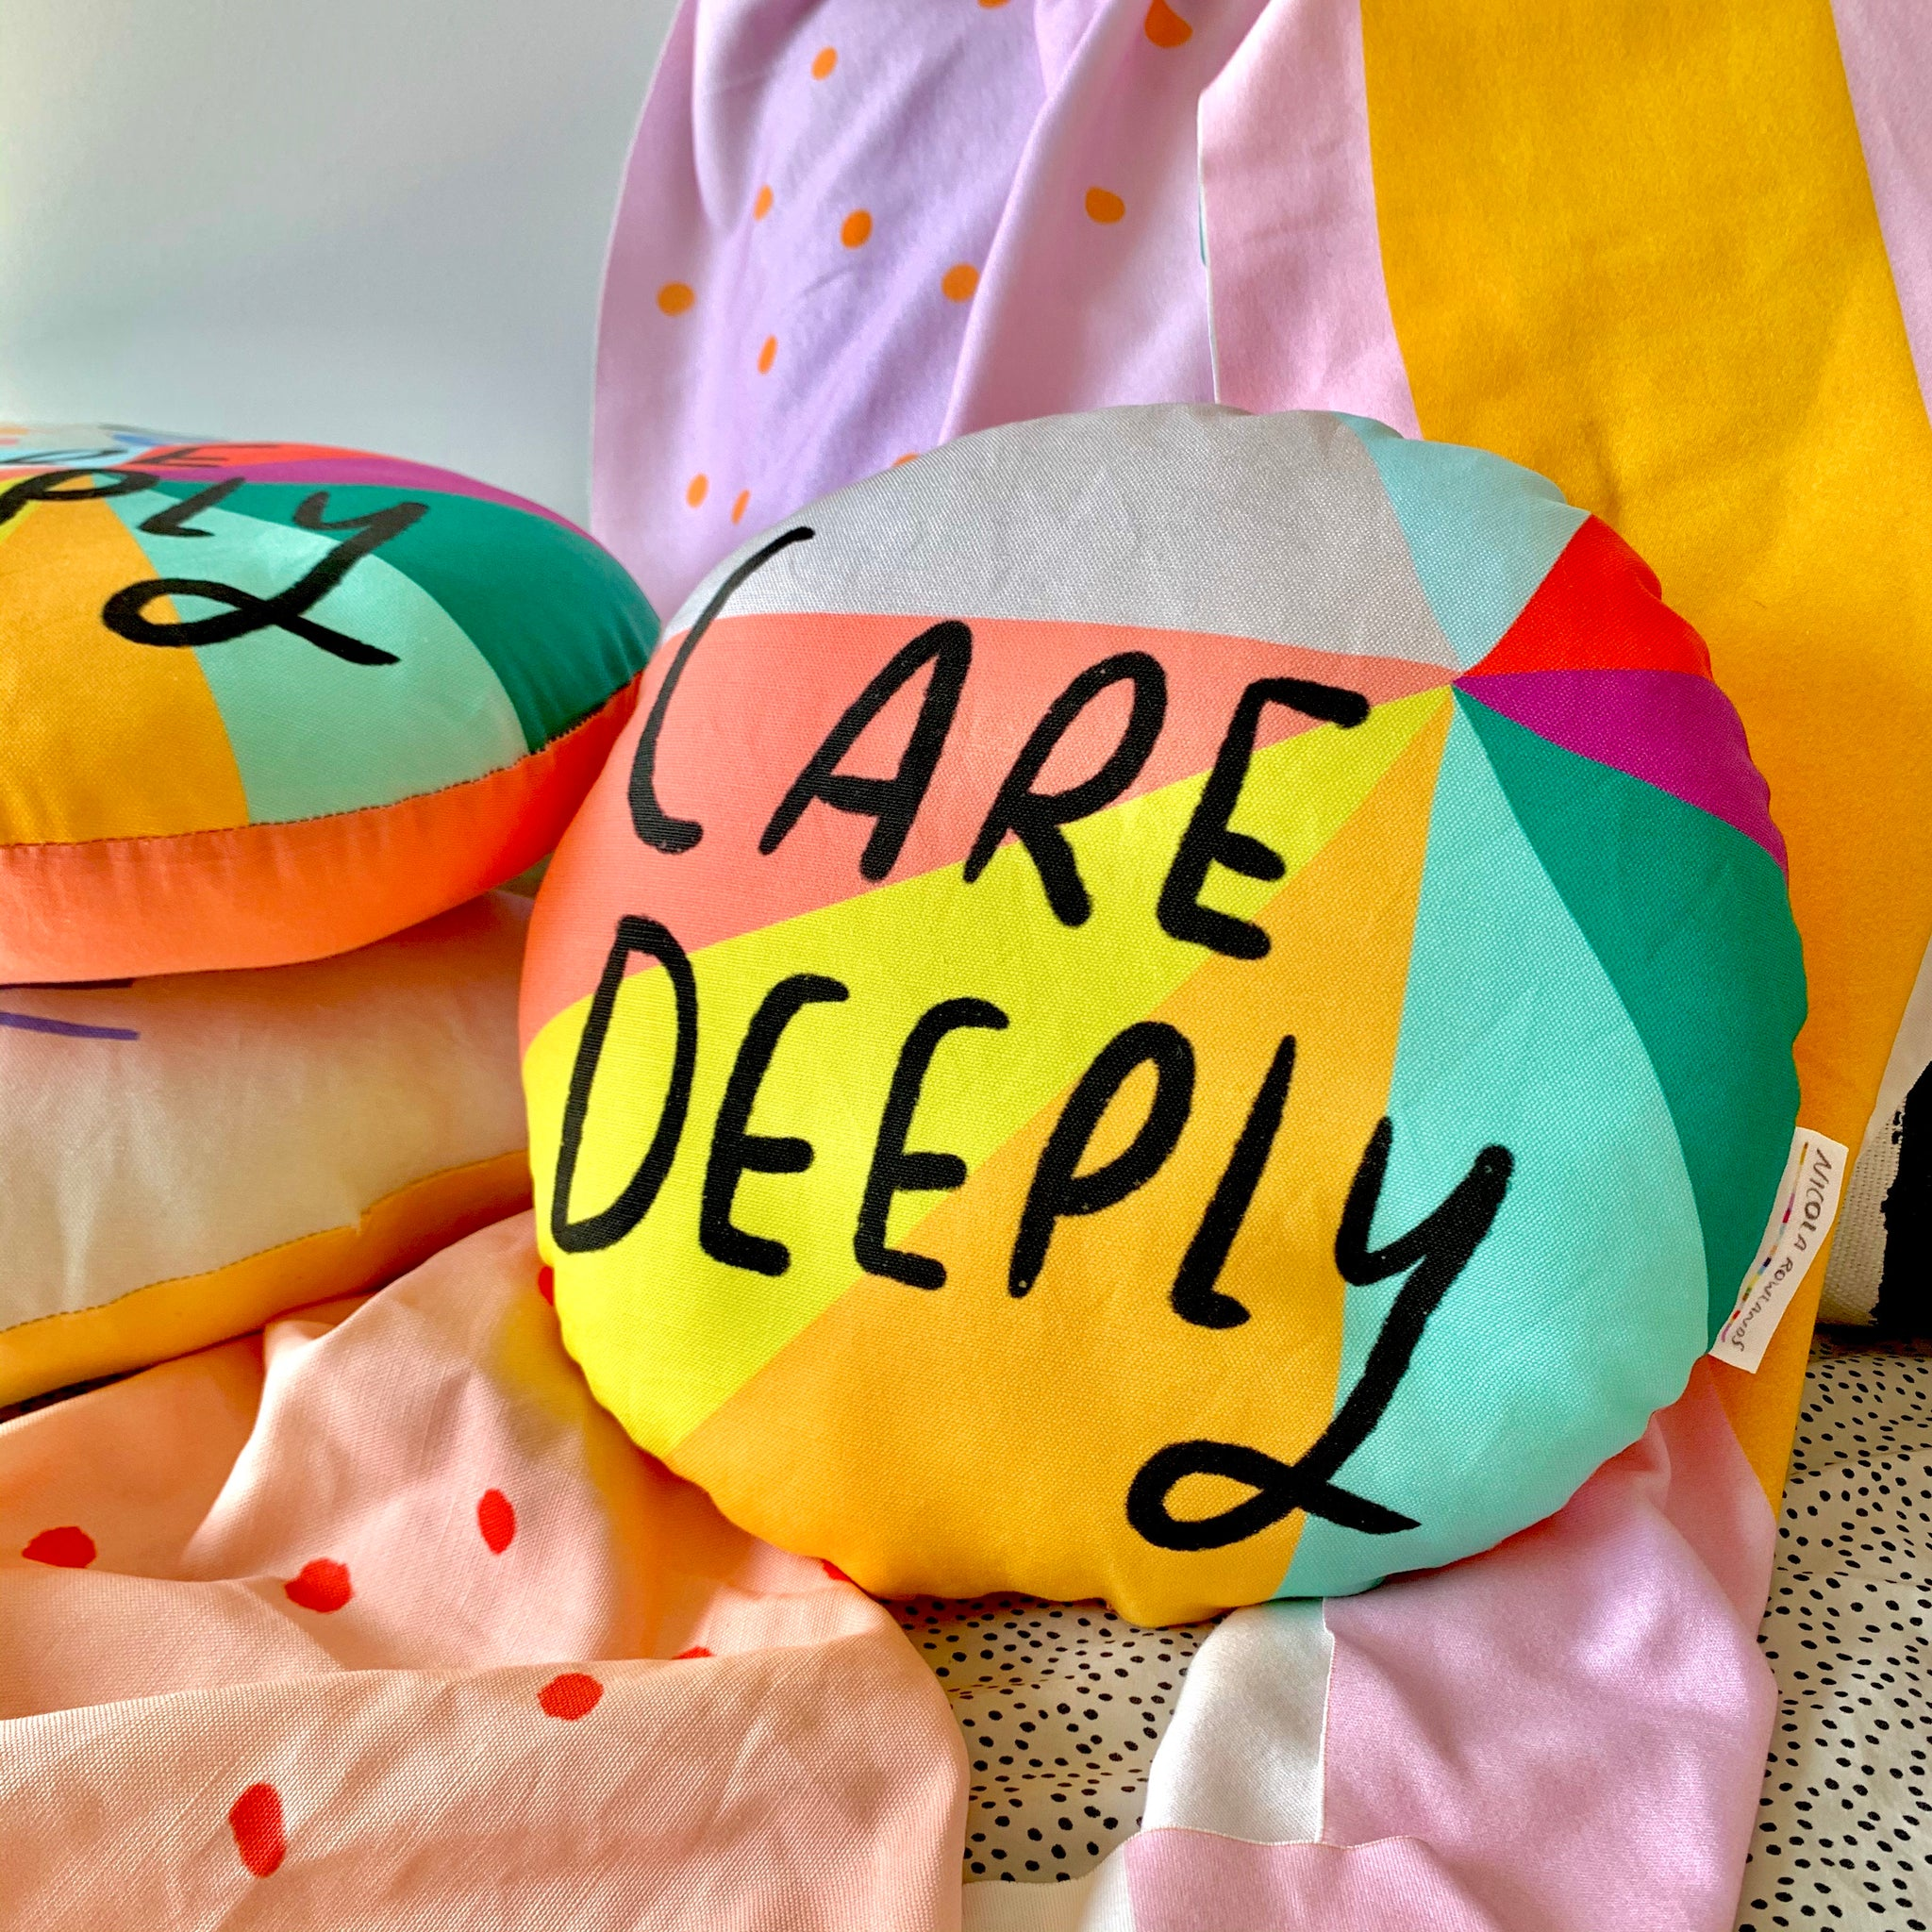 CARE DEEPLY plushie